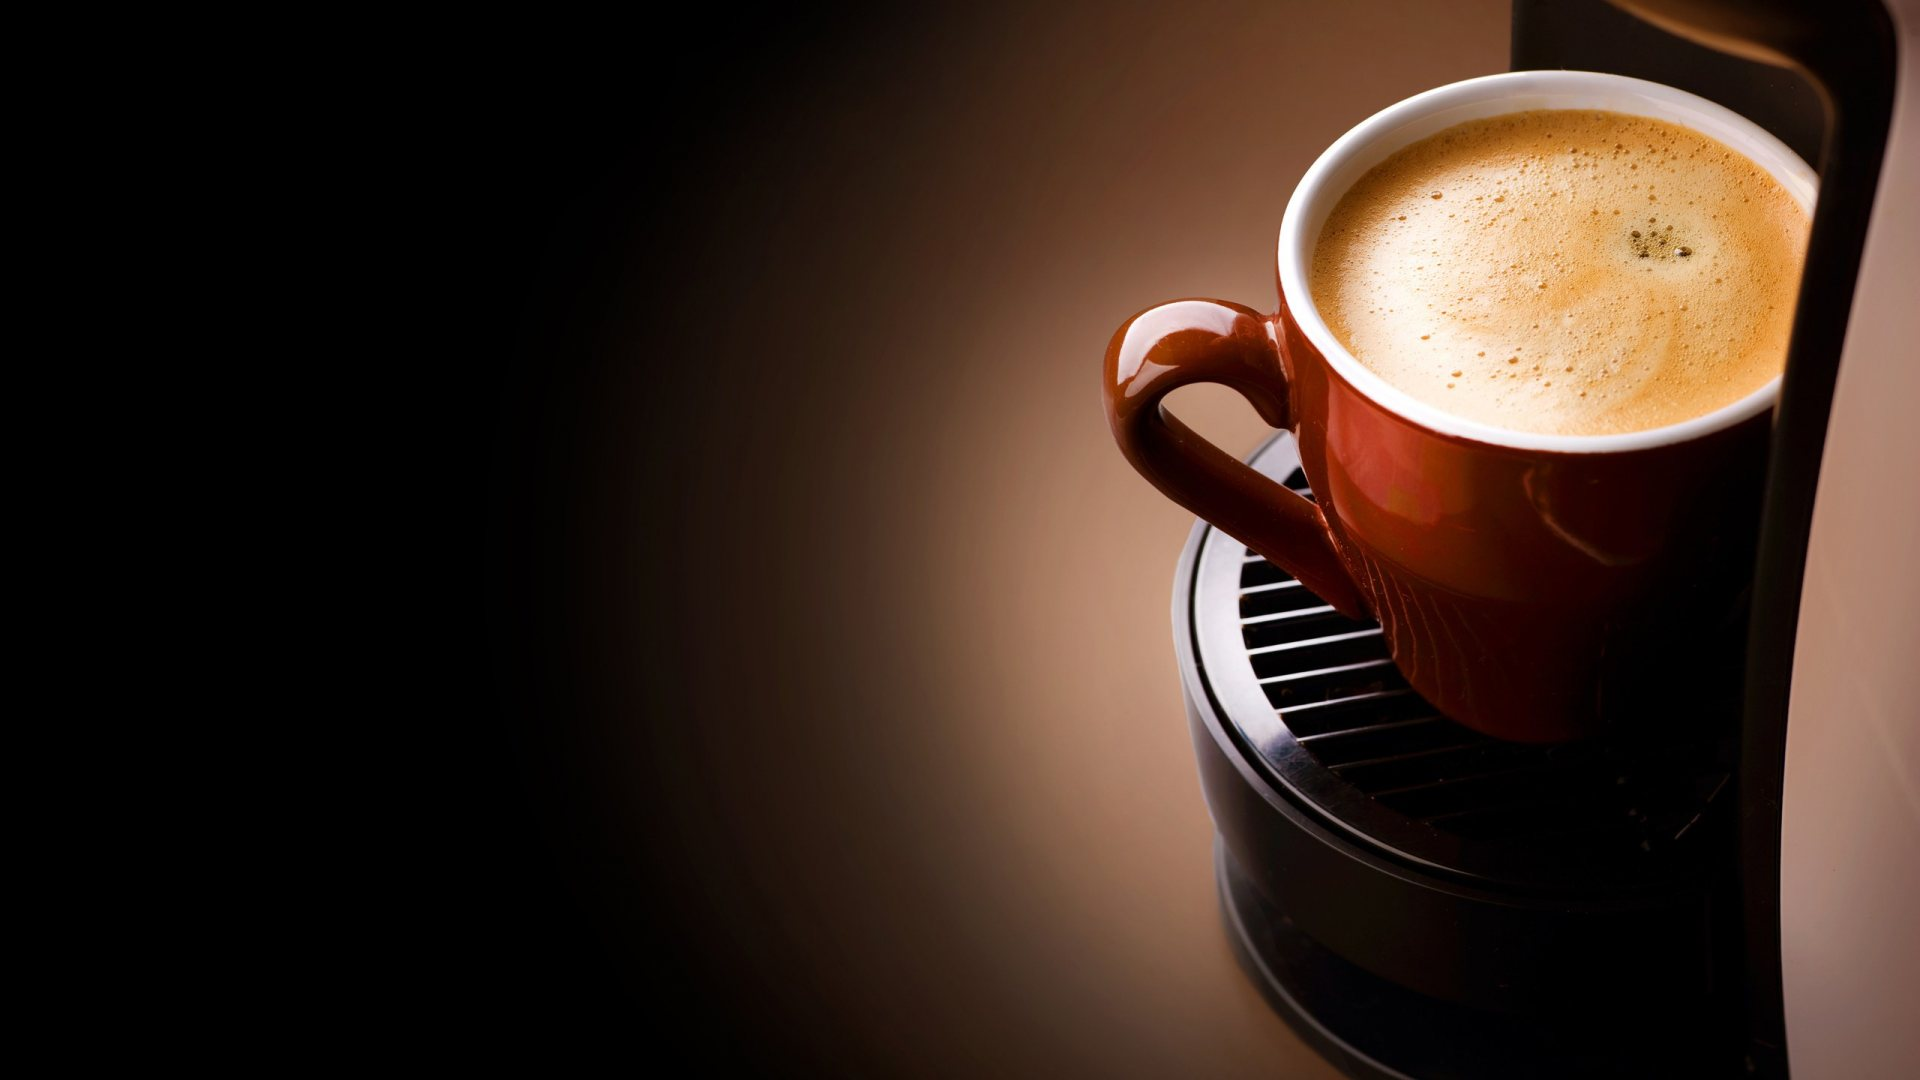 Coffee cup close up wallpaper